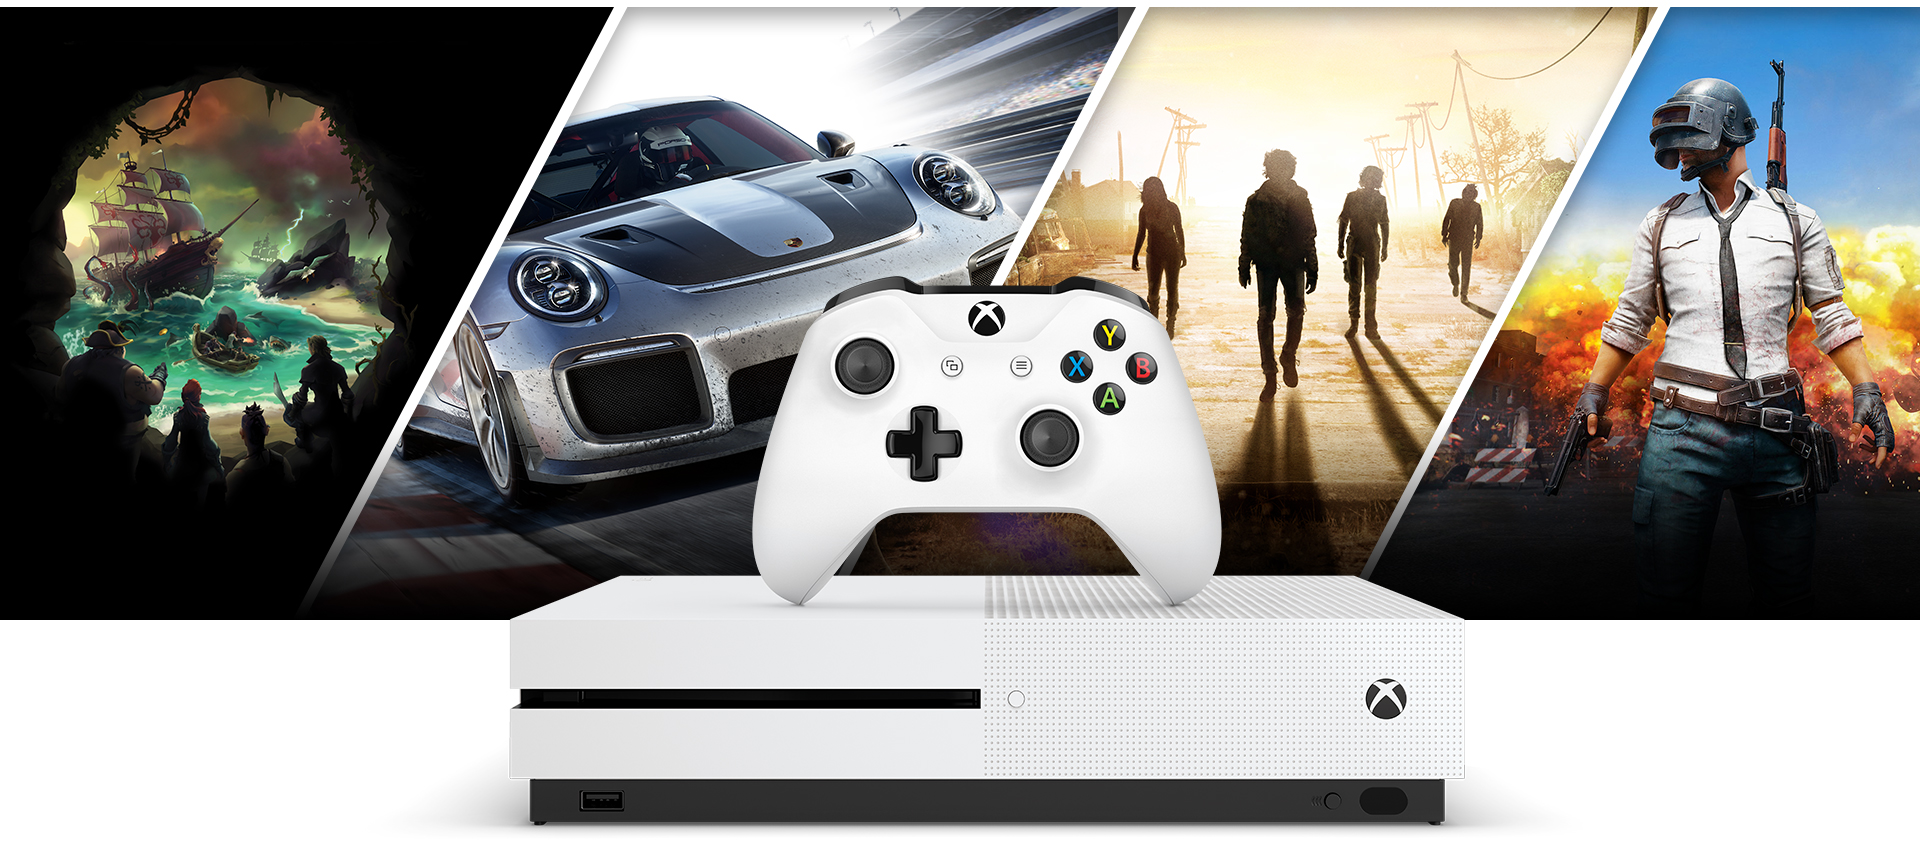 Gráficos de Sea of Thieves Forza 7 State of Decay 3 y PlayerUnknown's Battlegrounds detrás de una consola Xbox One S y un Mando Xbox blanco